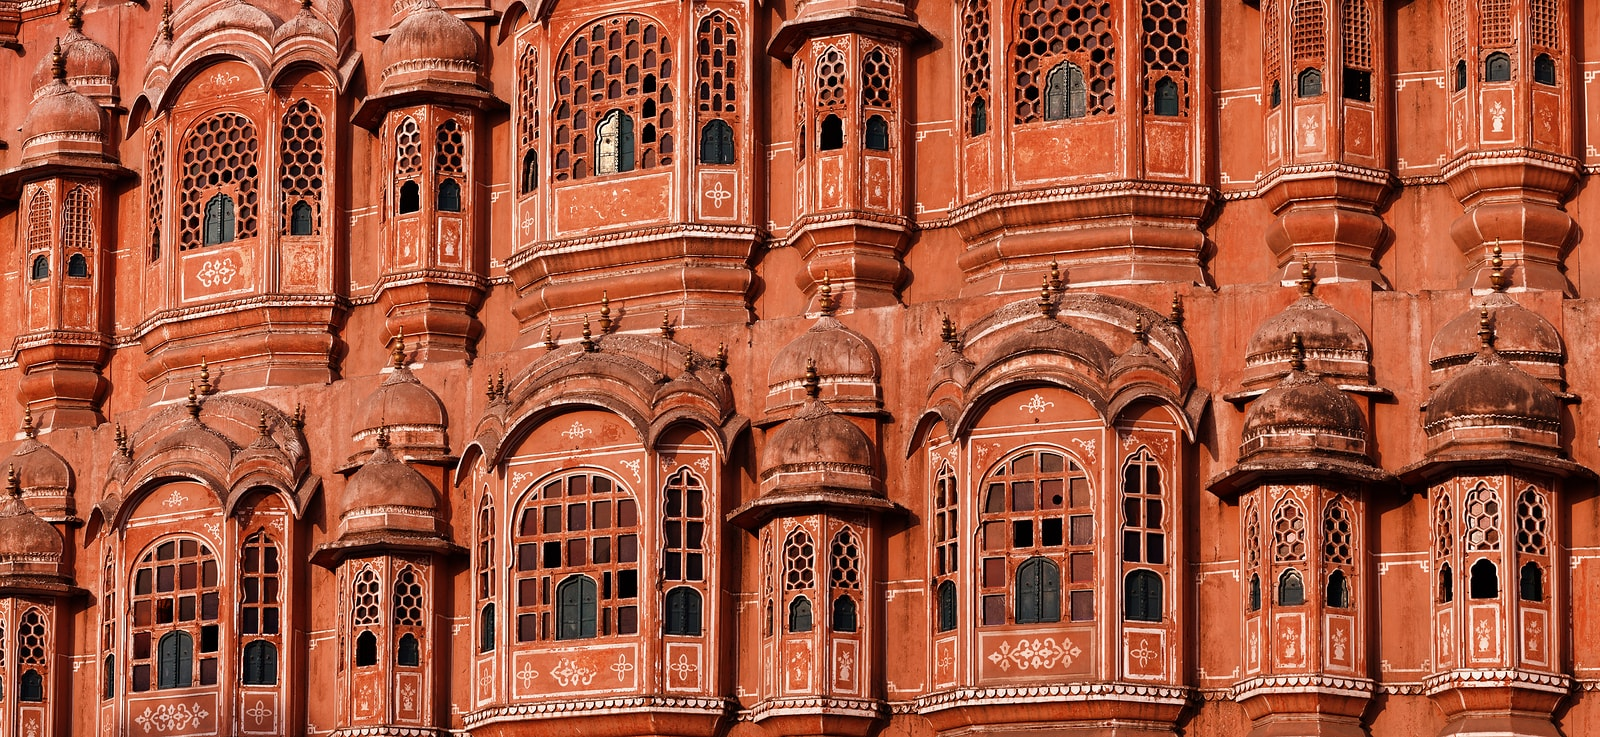 Hawa-Mahal-Palace-Of-Winds-Jaipur